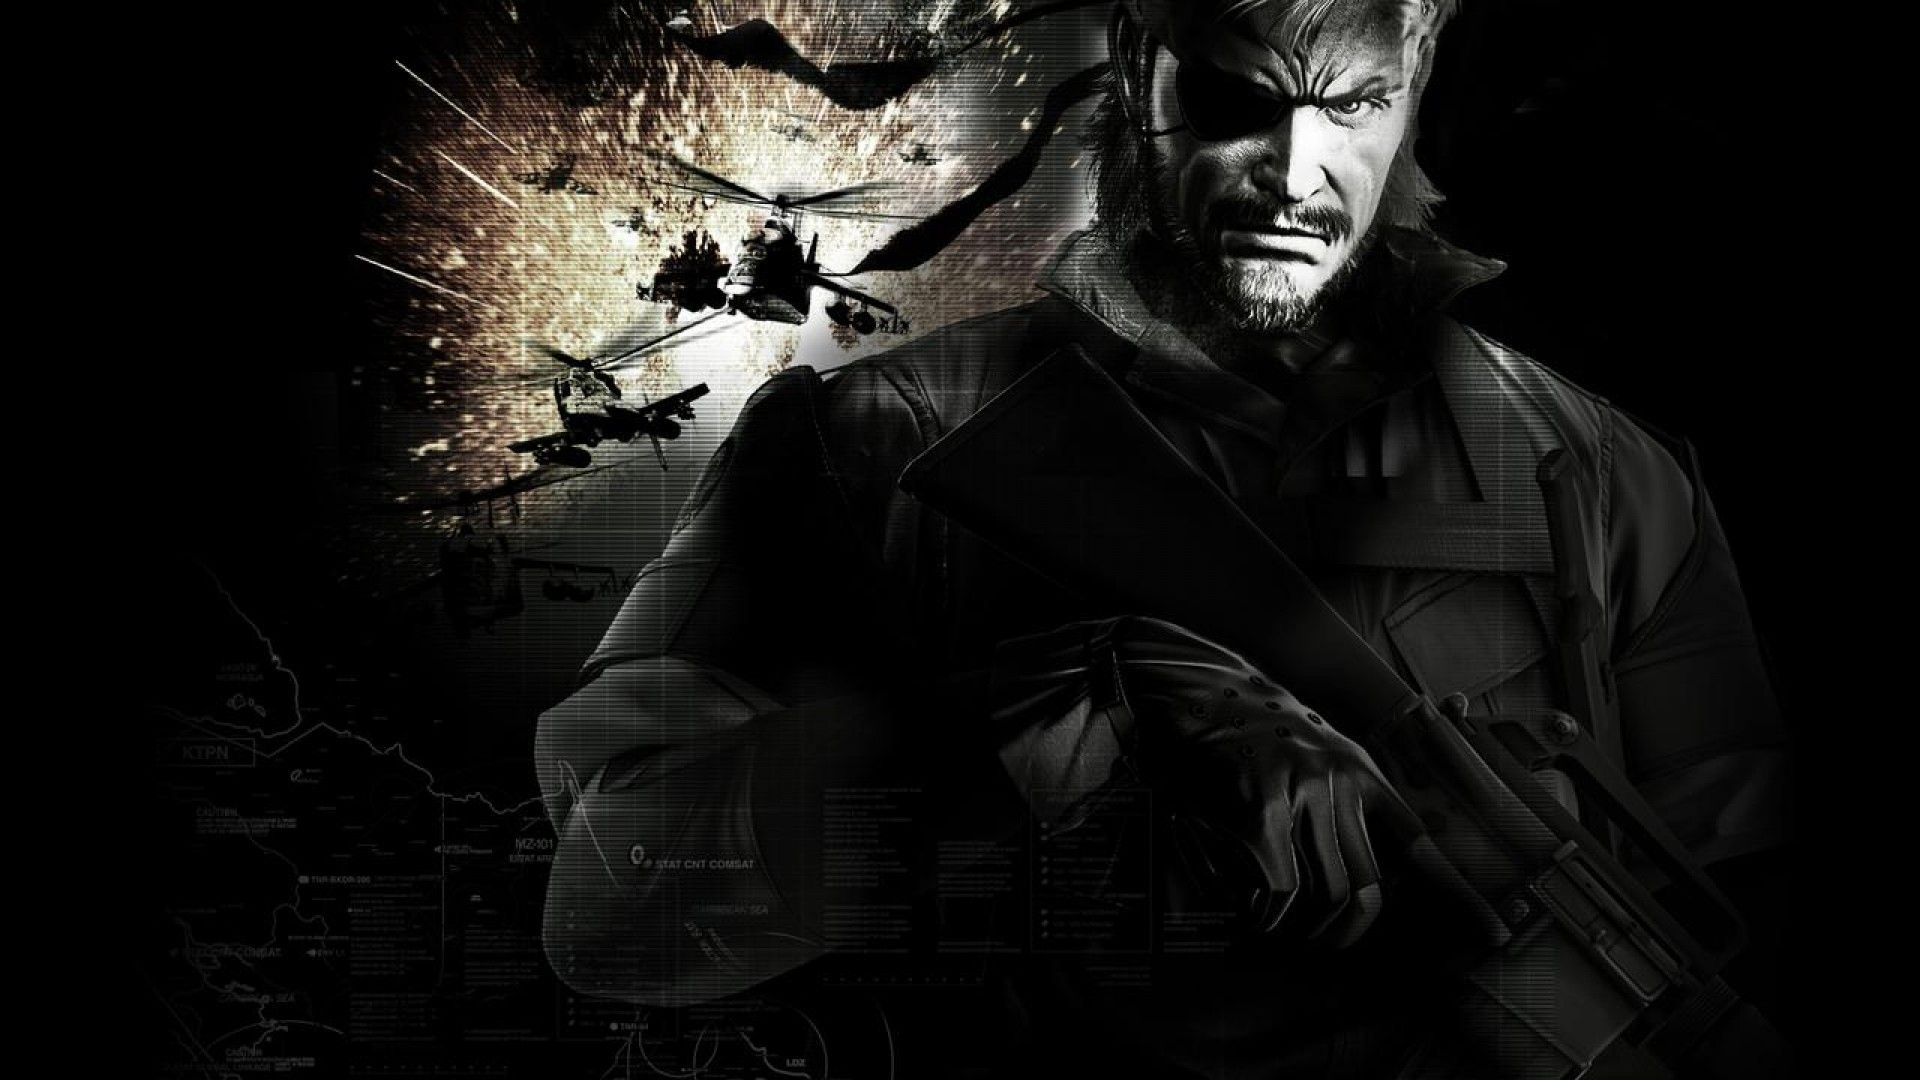 1080p metal gear solid wallpapers - wallpapersafari | beautiful